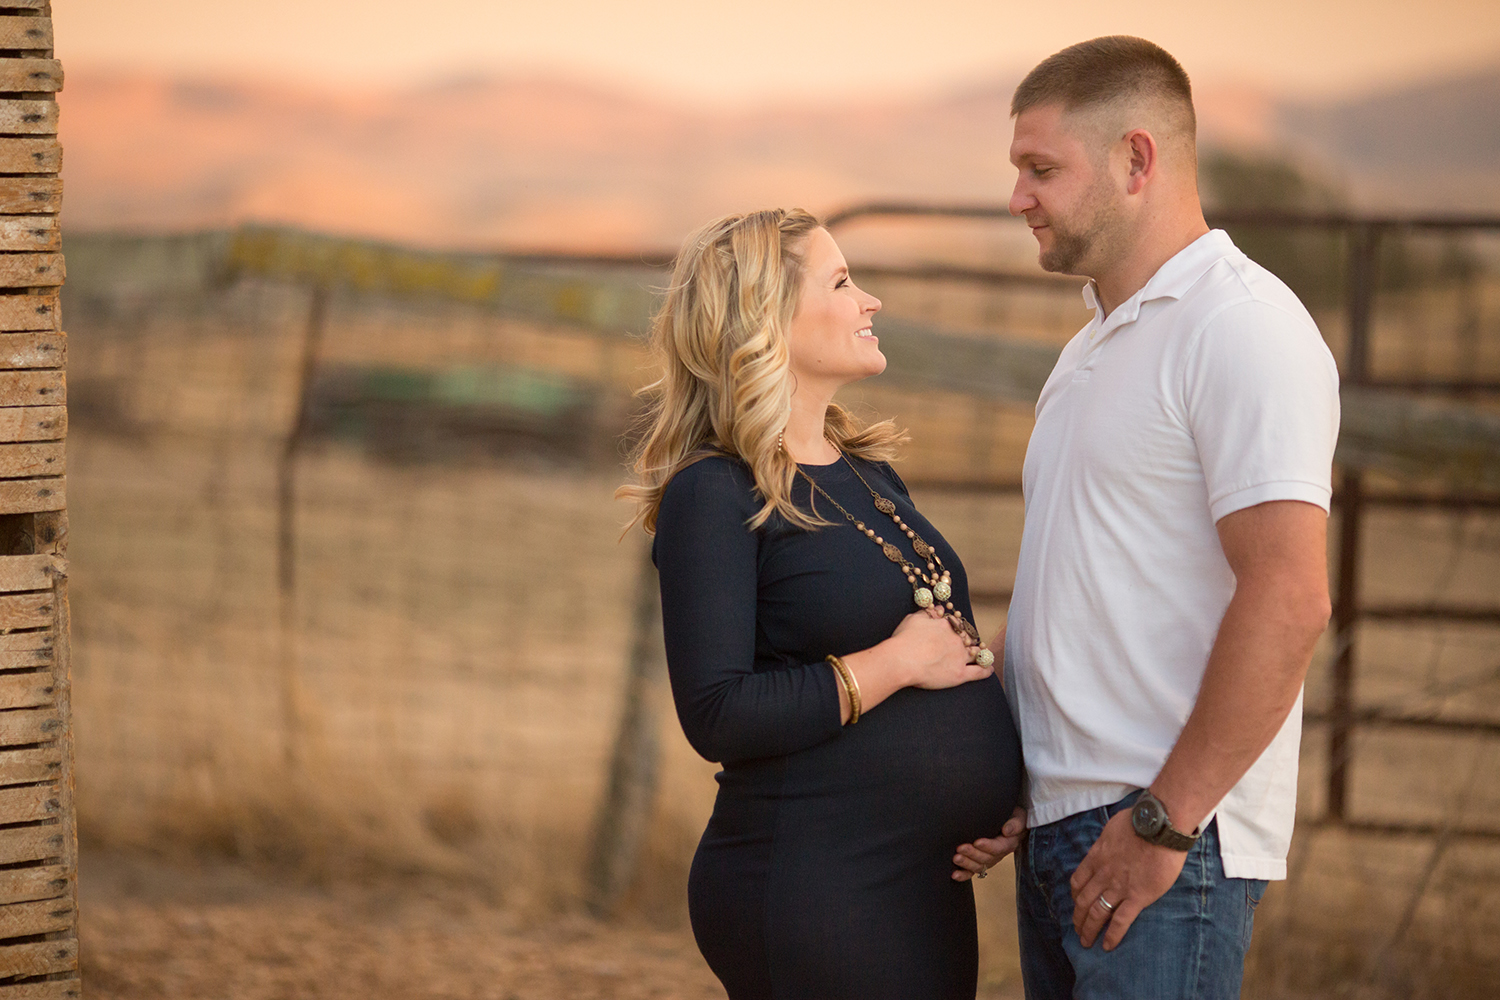 Dena_Rooney_Maternity_Portraits_024.jpg